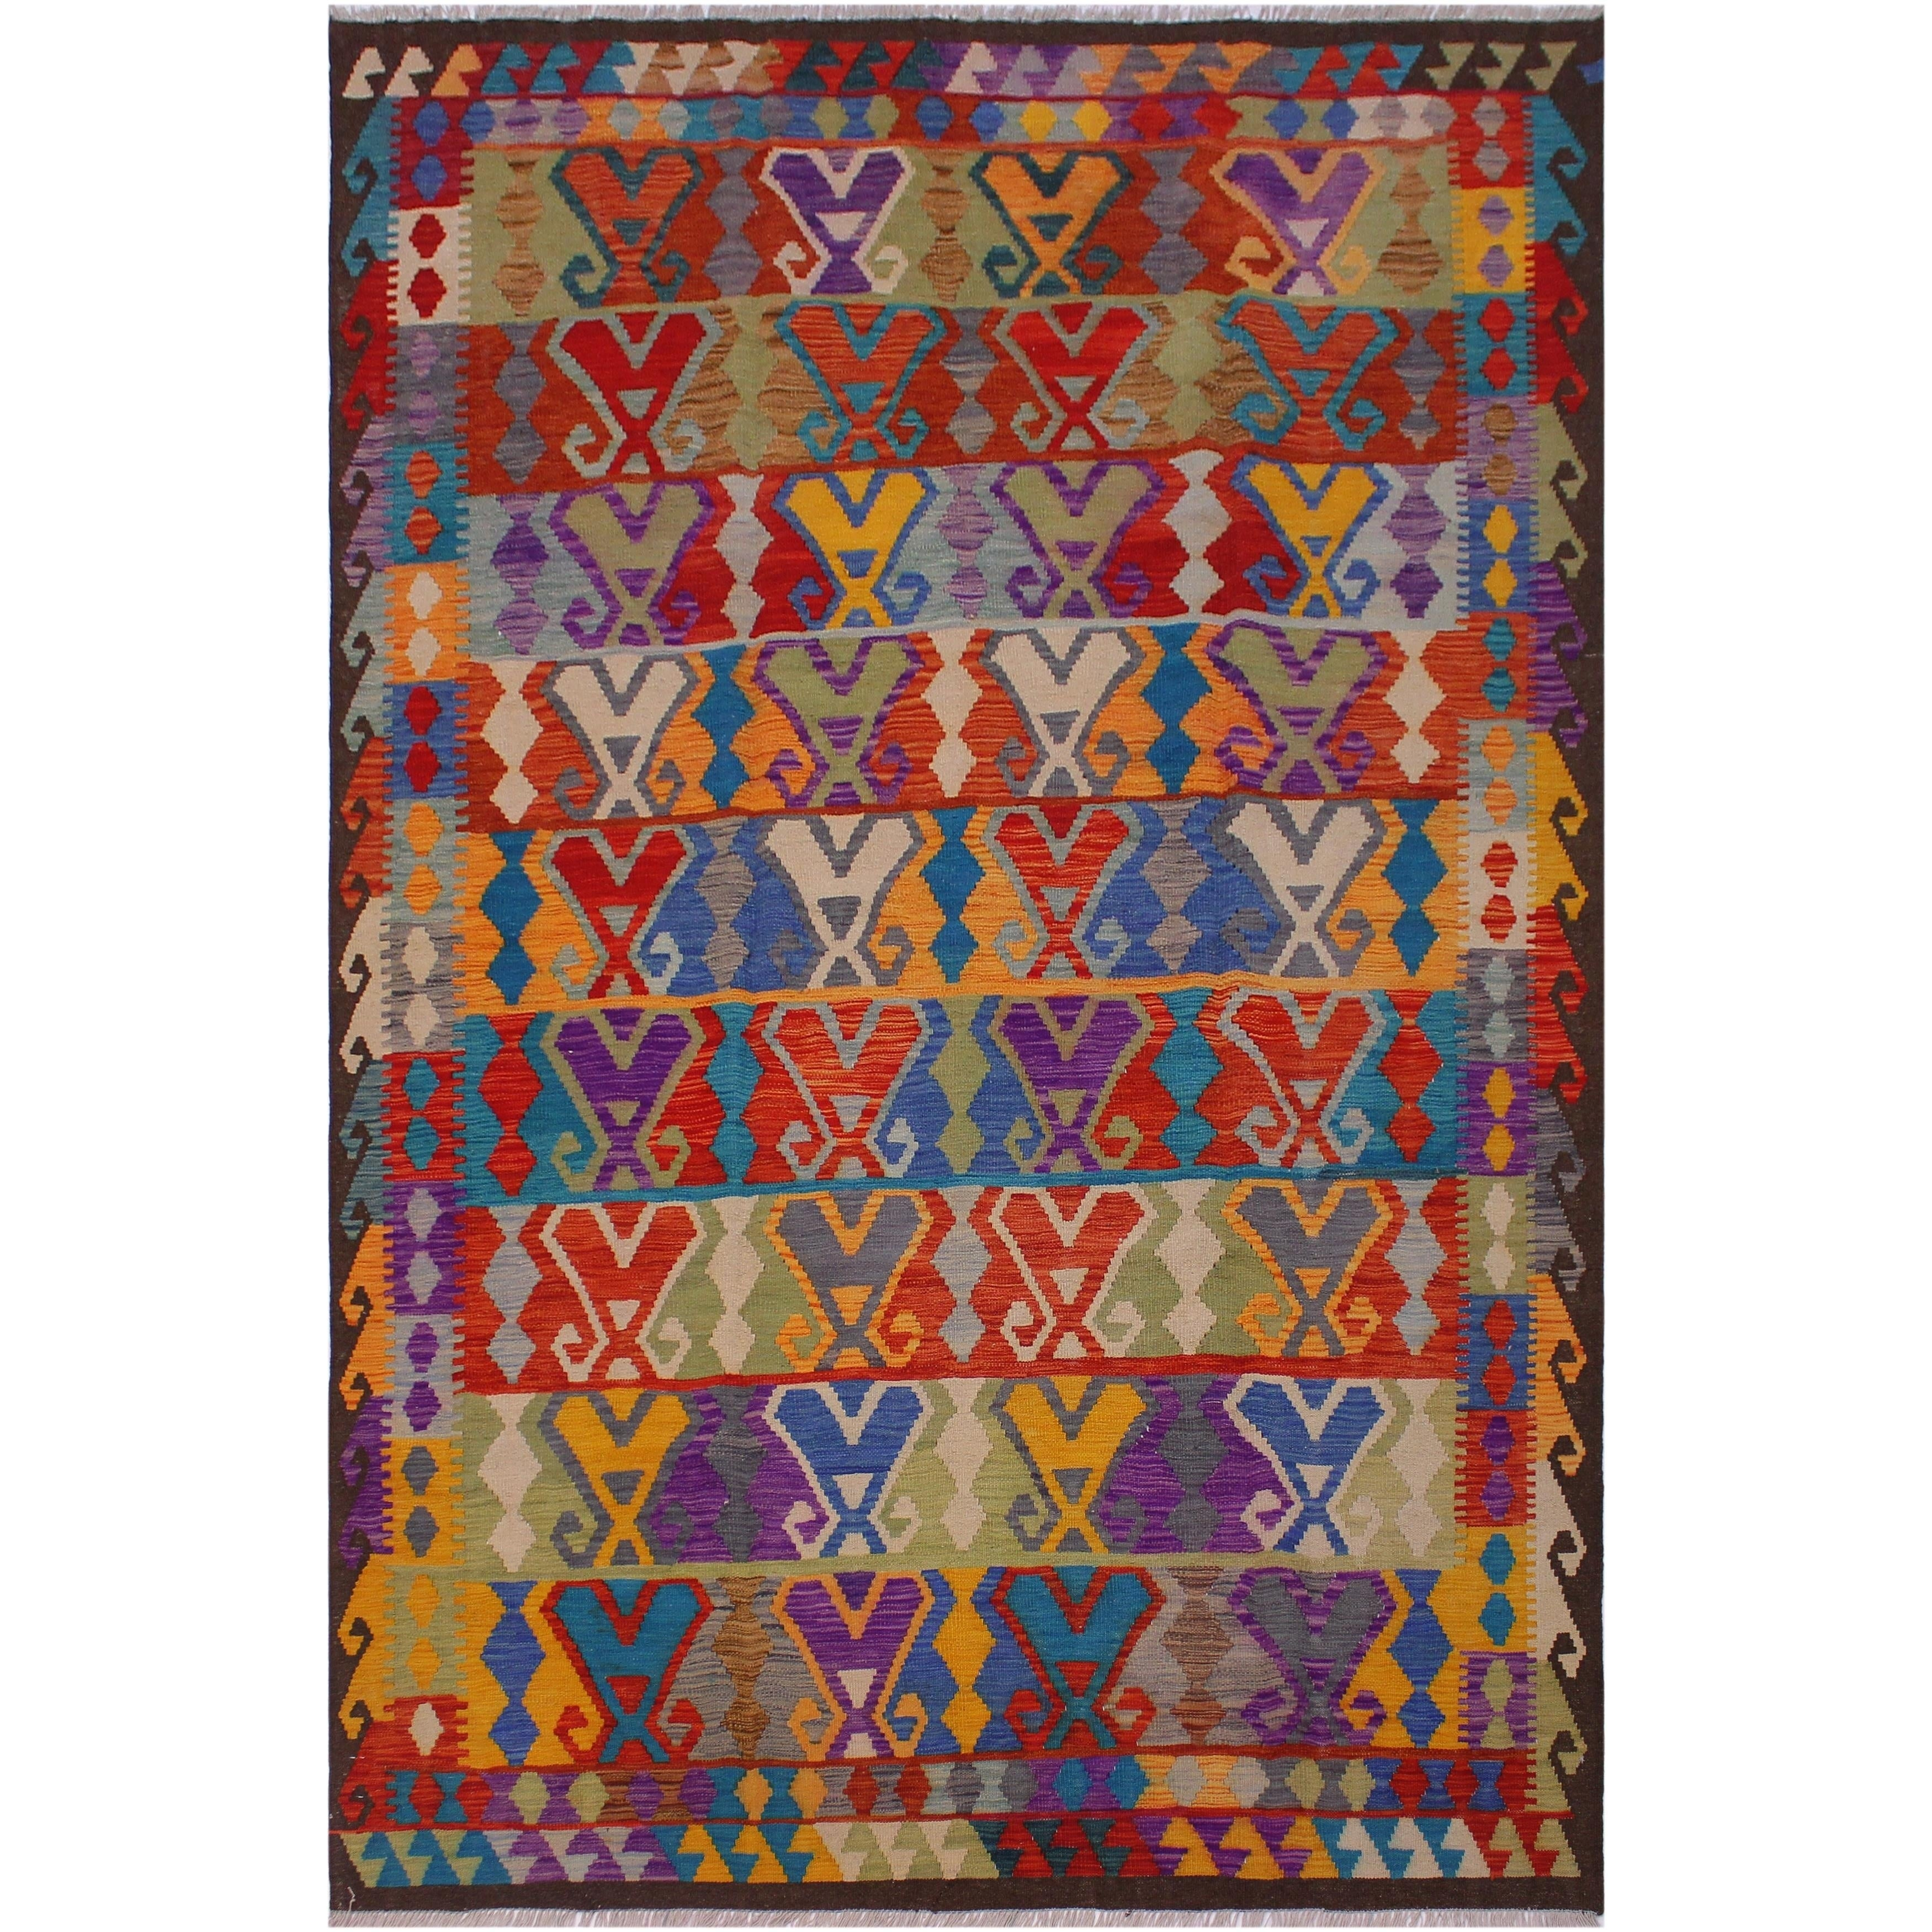 Kilim Cassius Red Brown Hand Woven Wool Rug 6 5 X 9 7 6 Ft 5 In X 9 Ft 7 In 6 Ft 5 In X 9 Ft 7 In On Sale Overstock 27398040